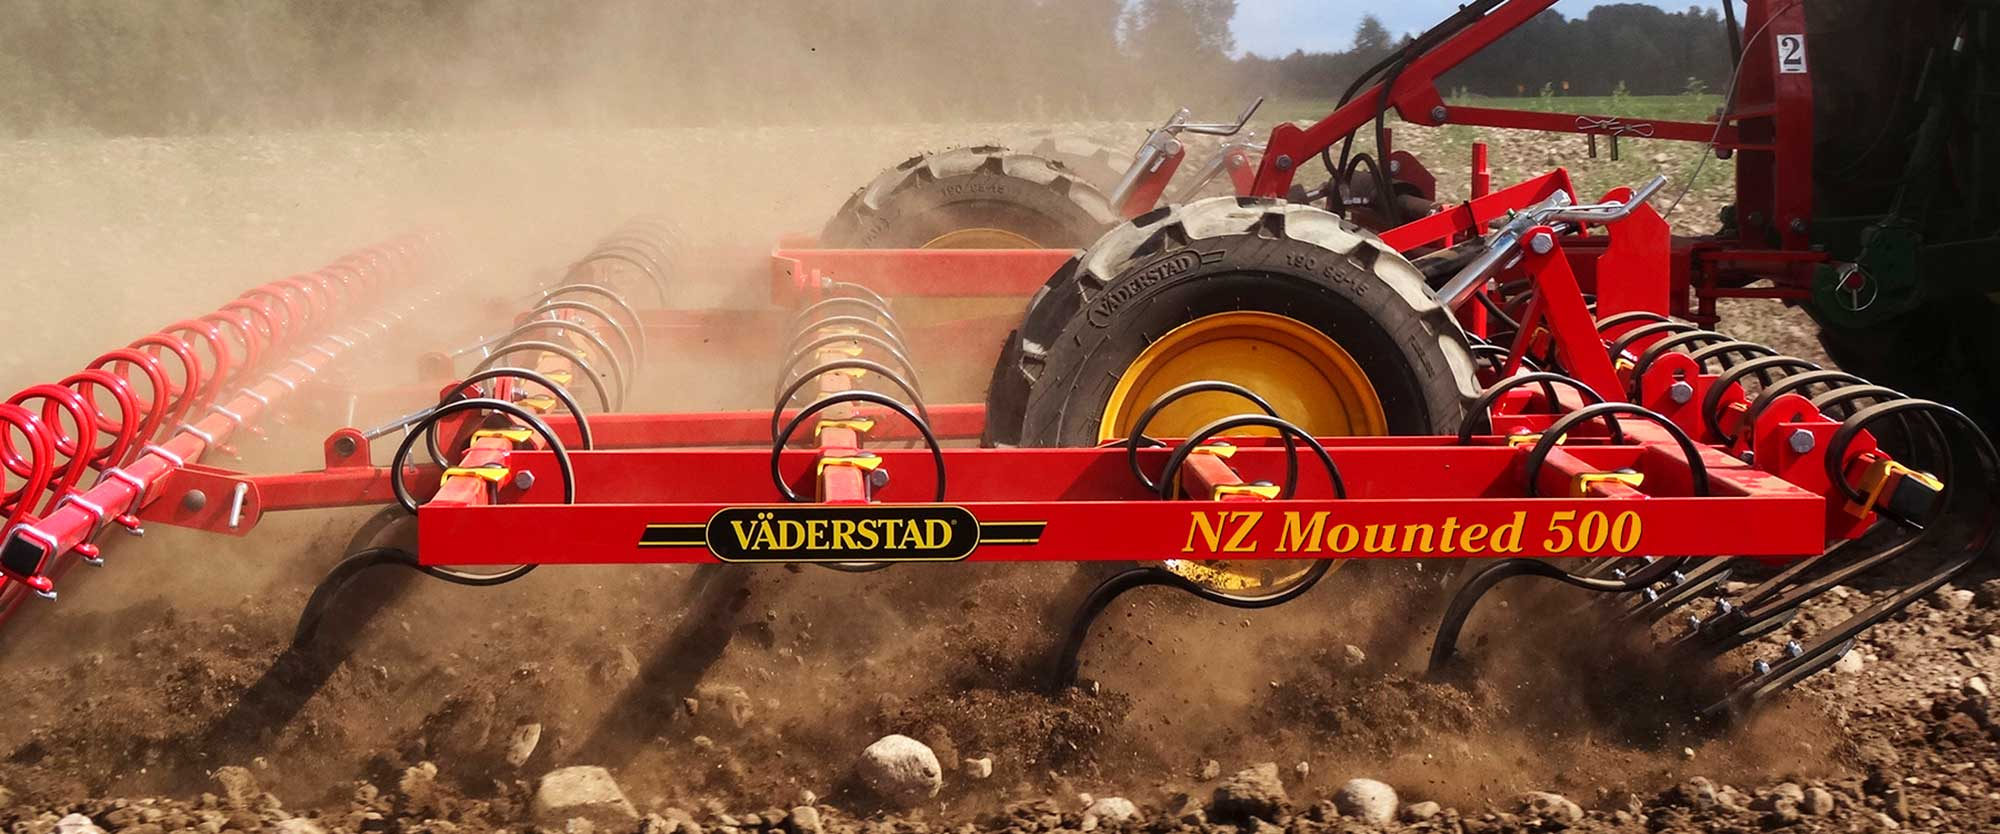 Väderstad harrow NZ Mounted 500